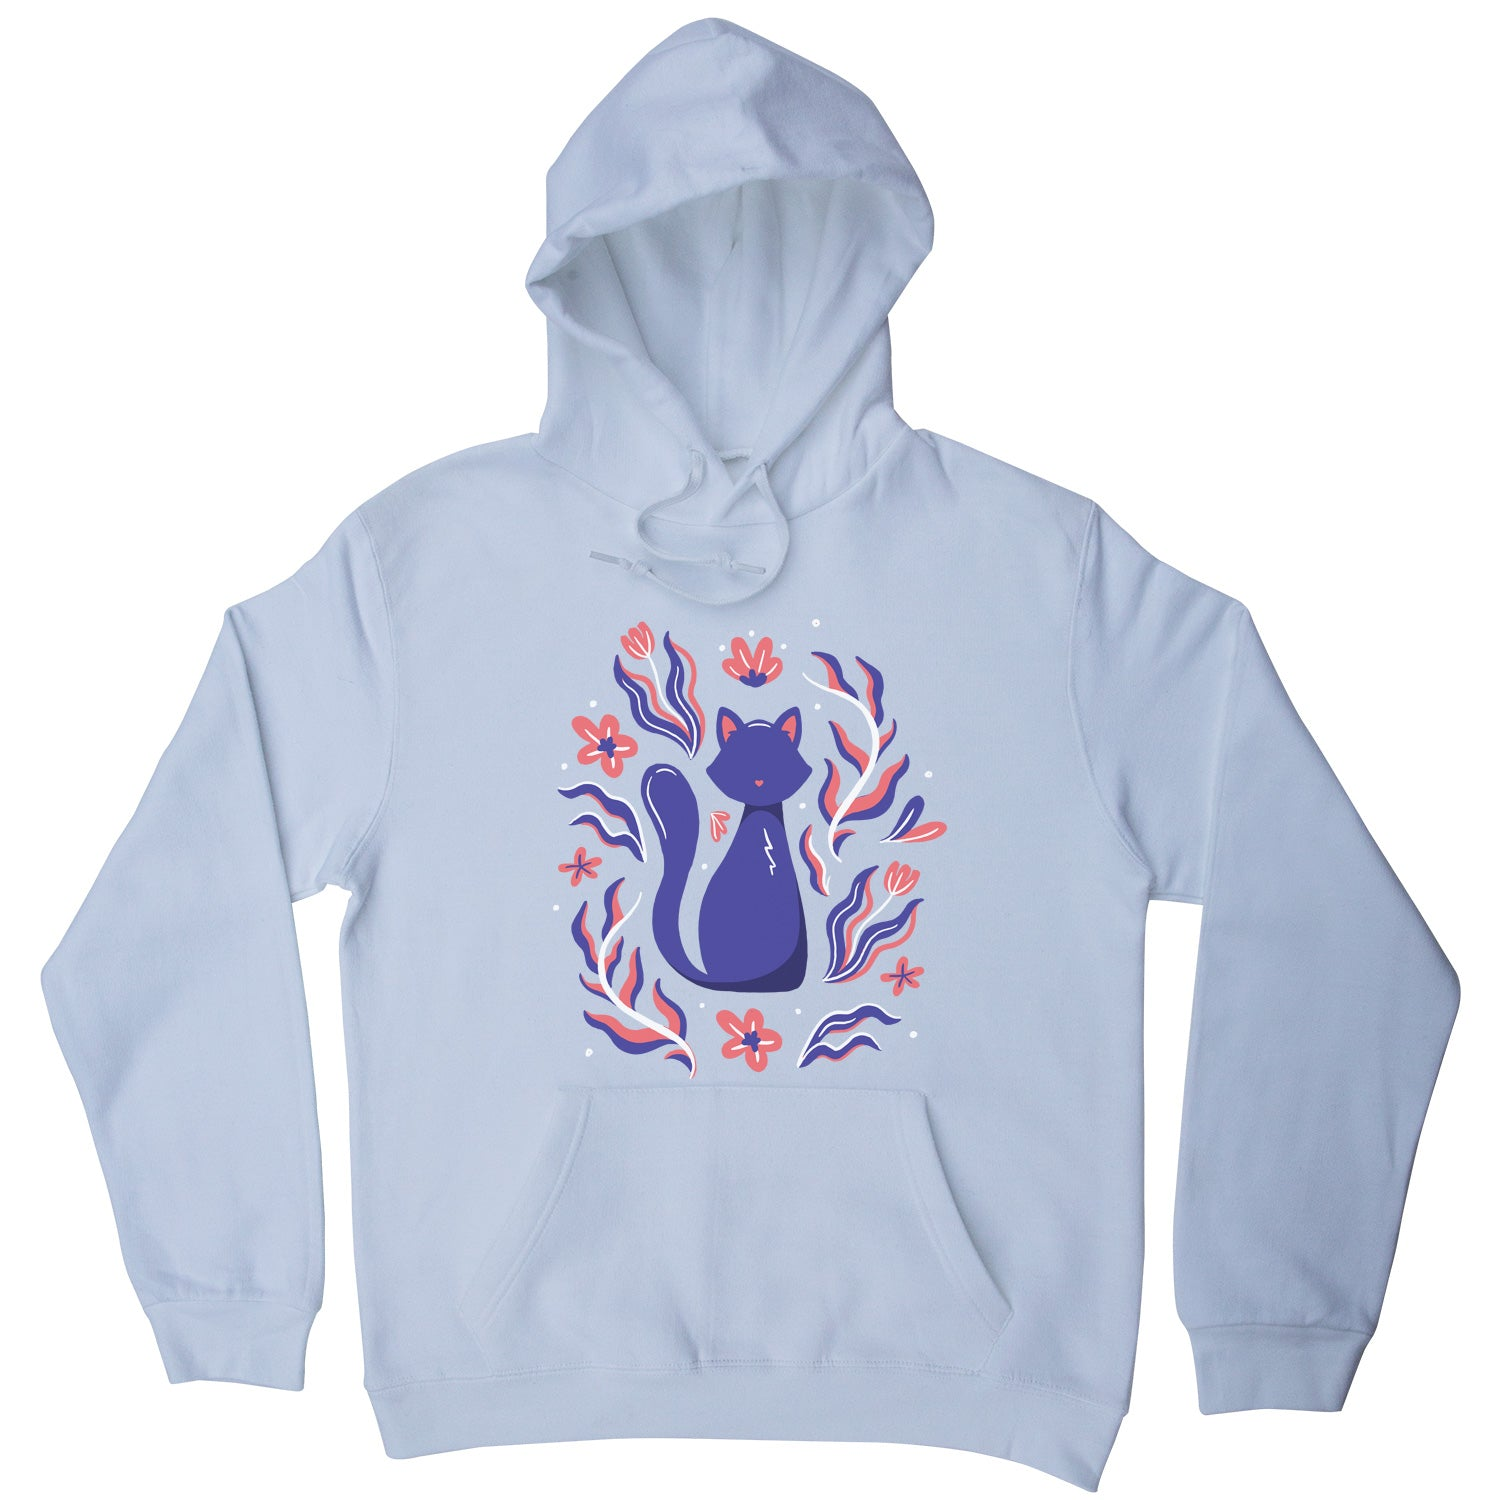 Nature cat illustration hoodie